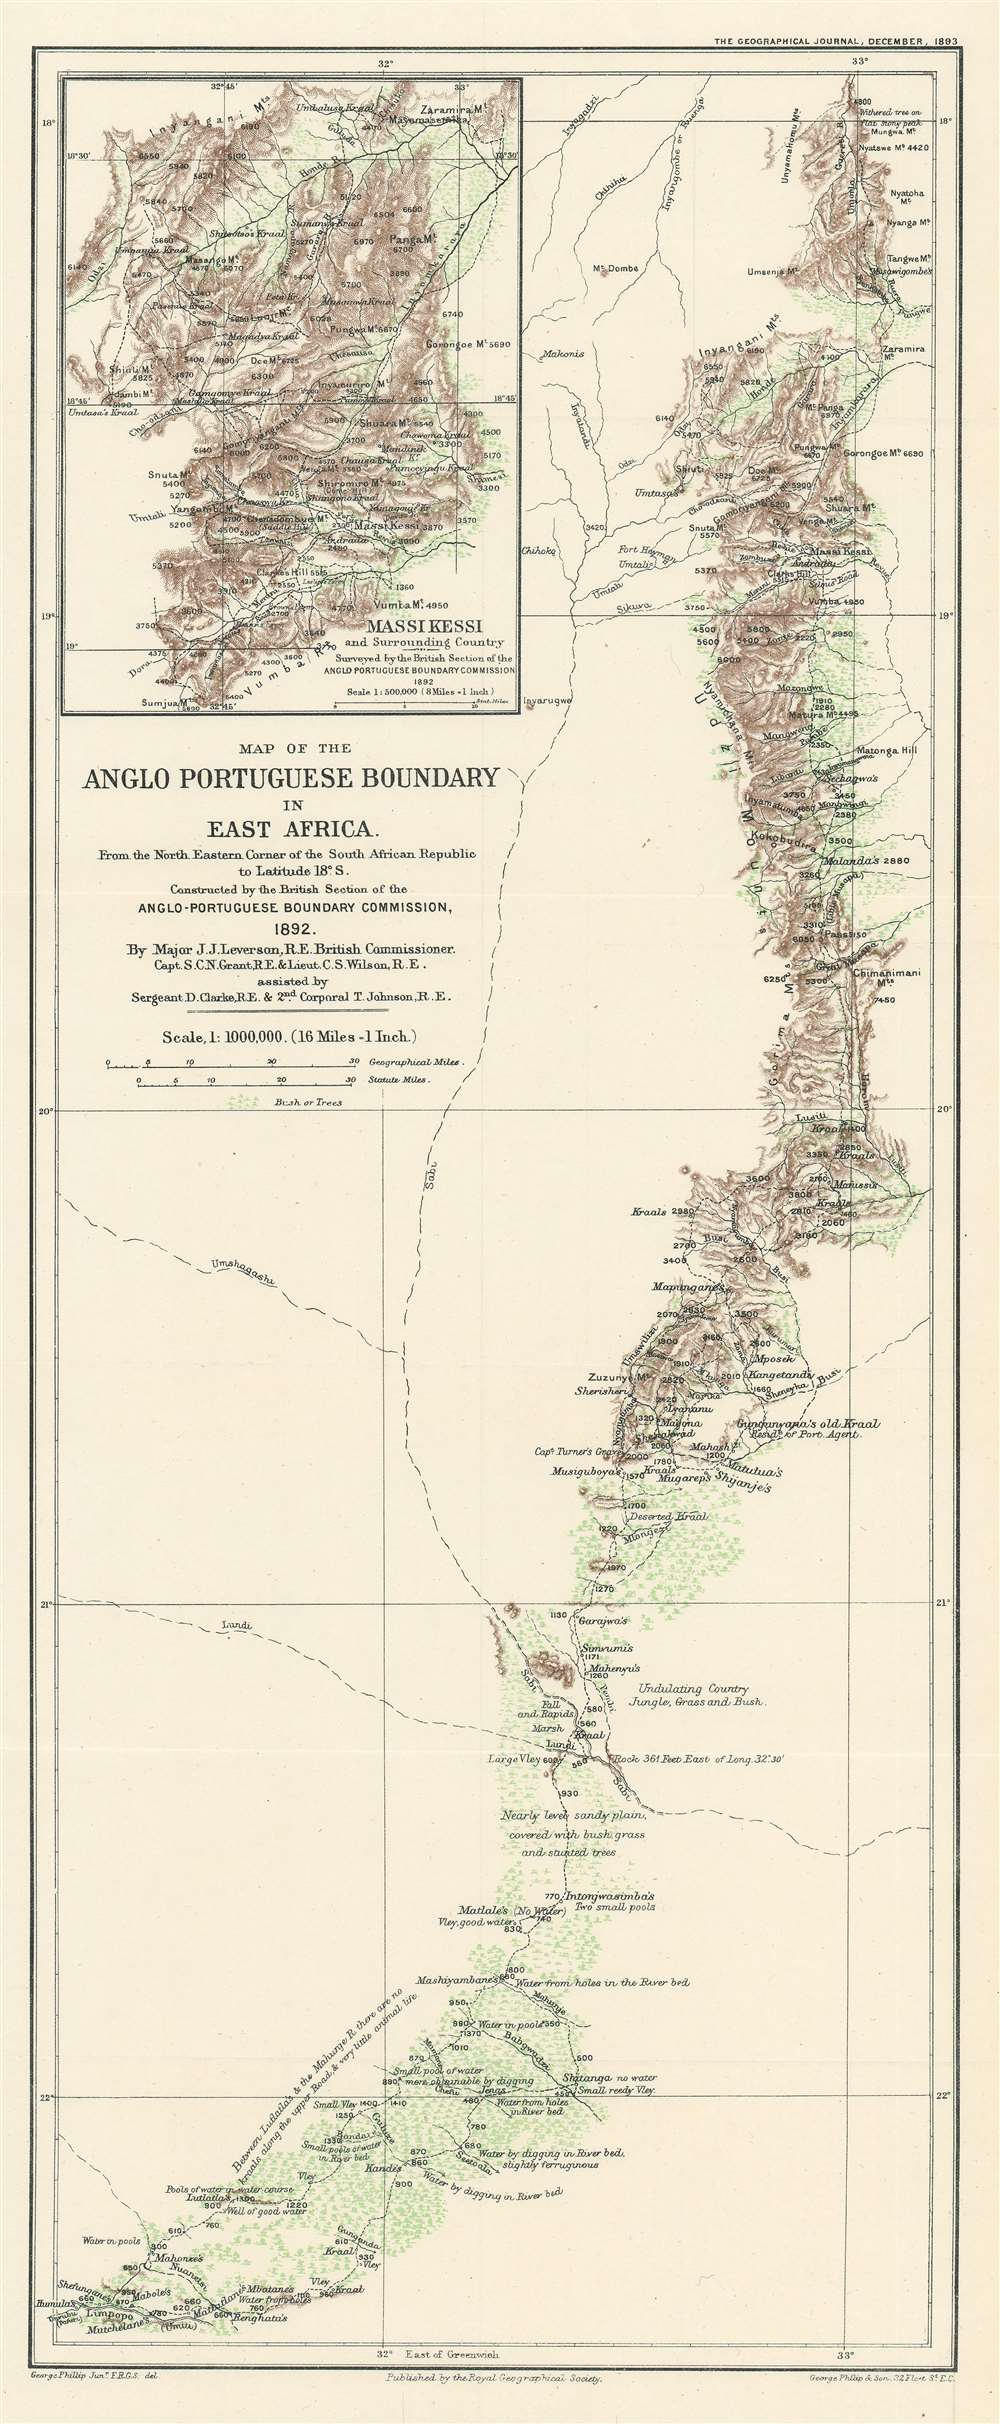 Map of the Anglo Portuguese Boundary in East Africa.